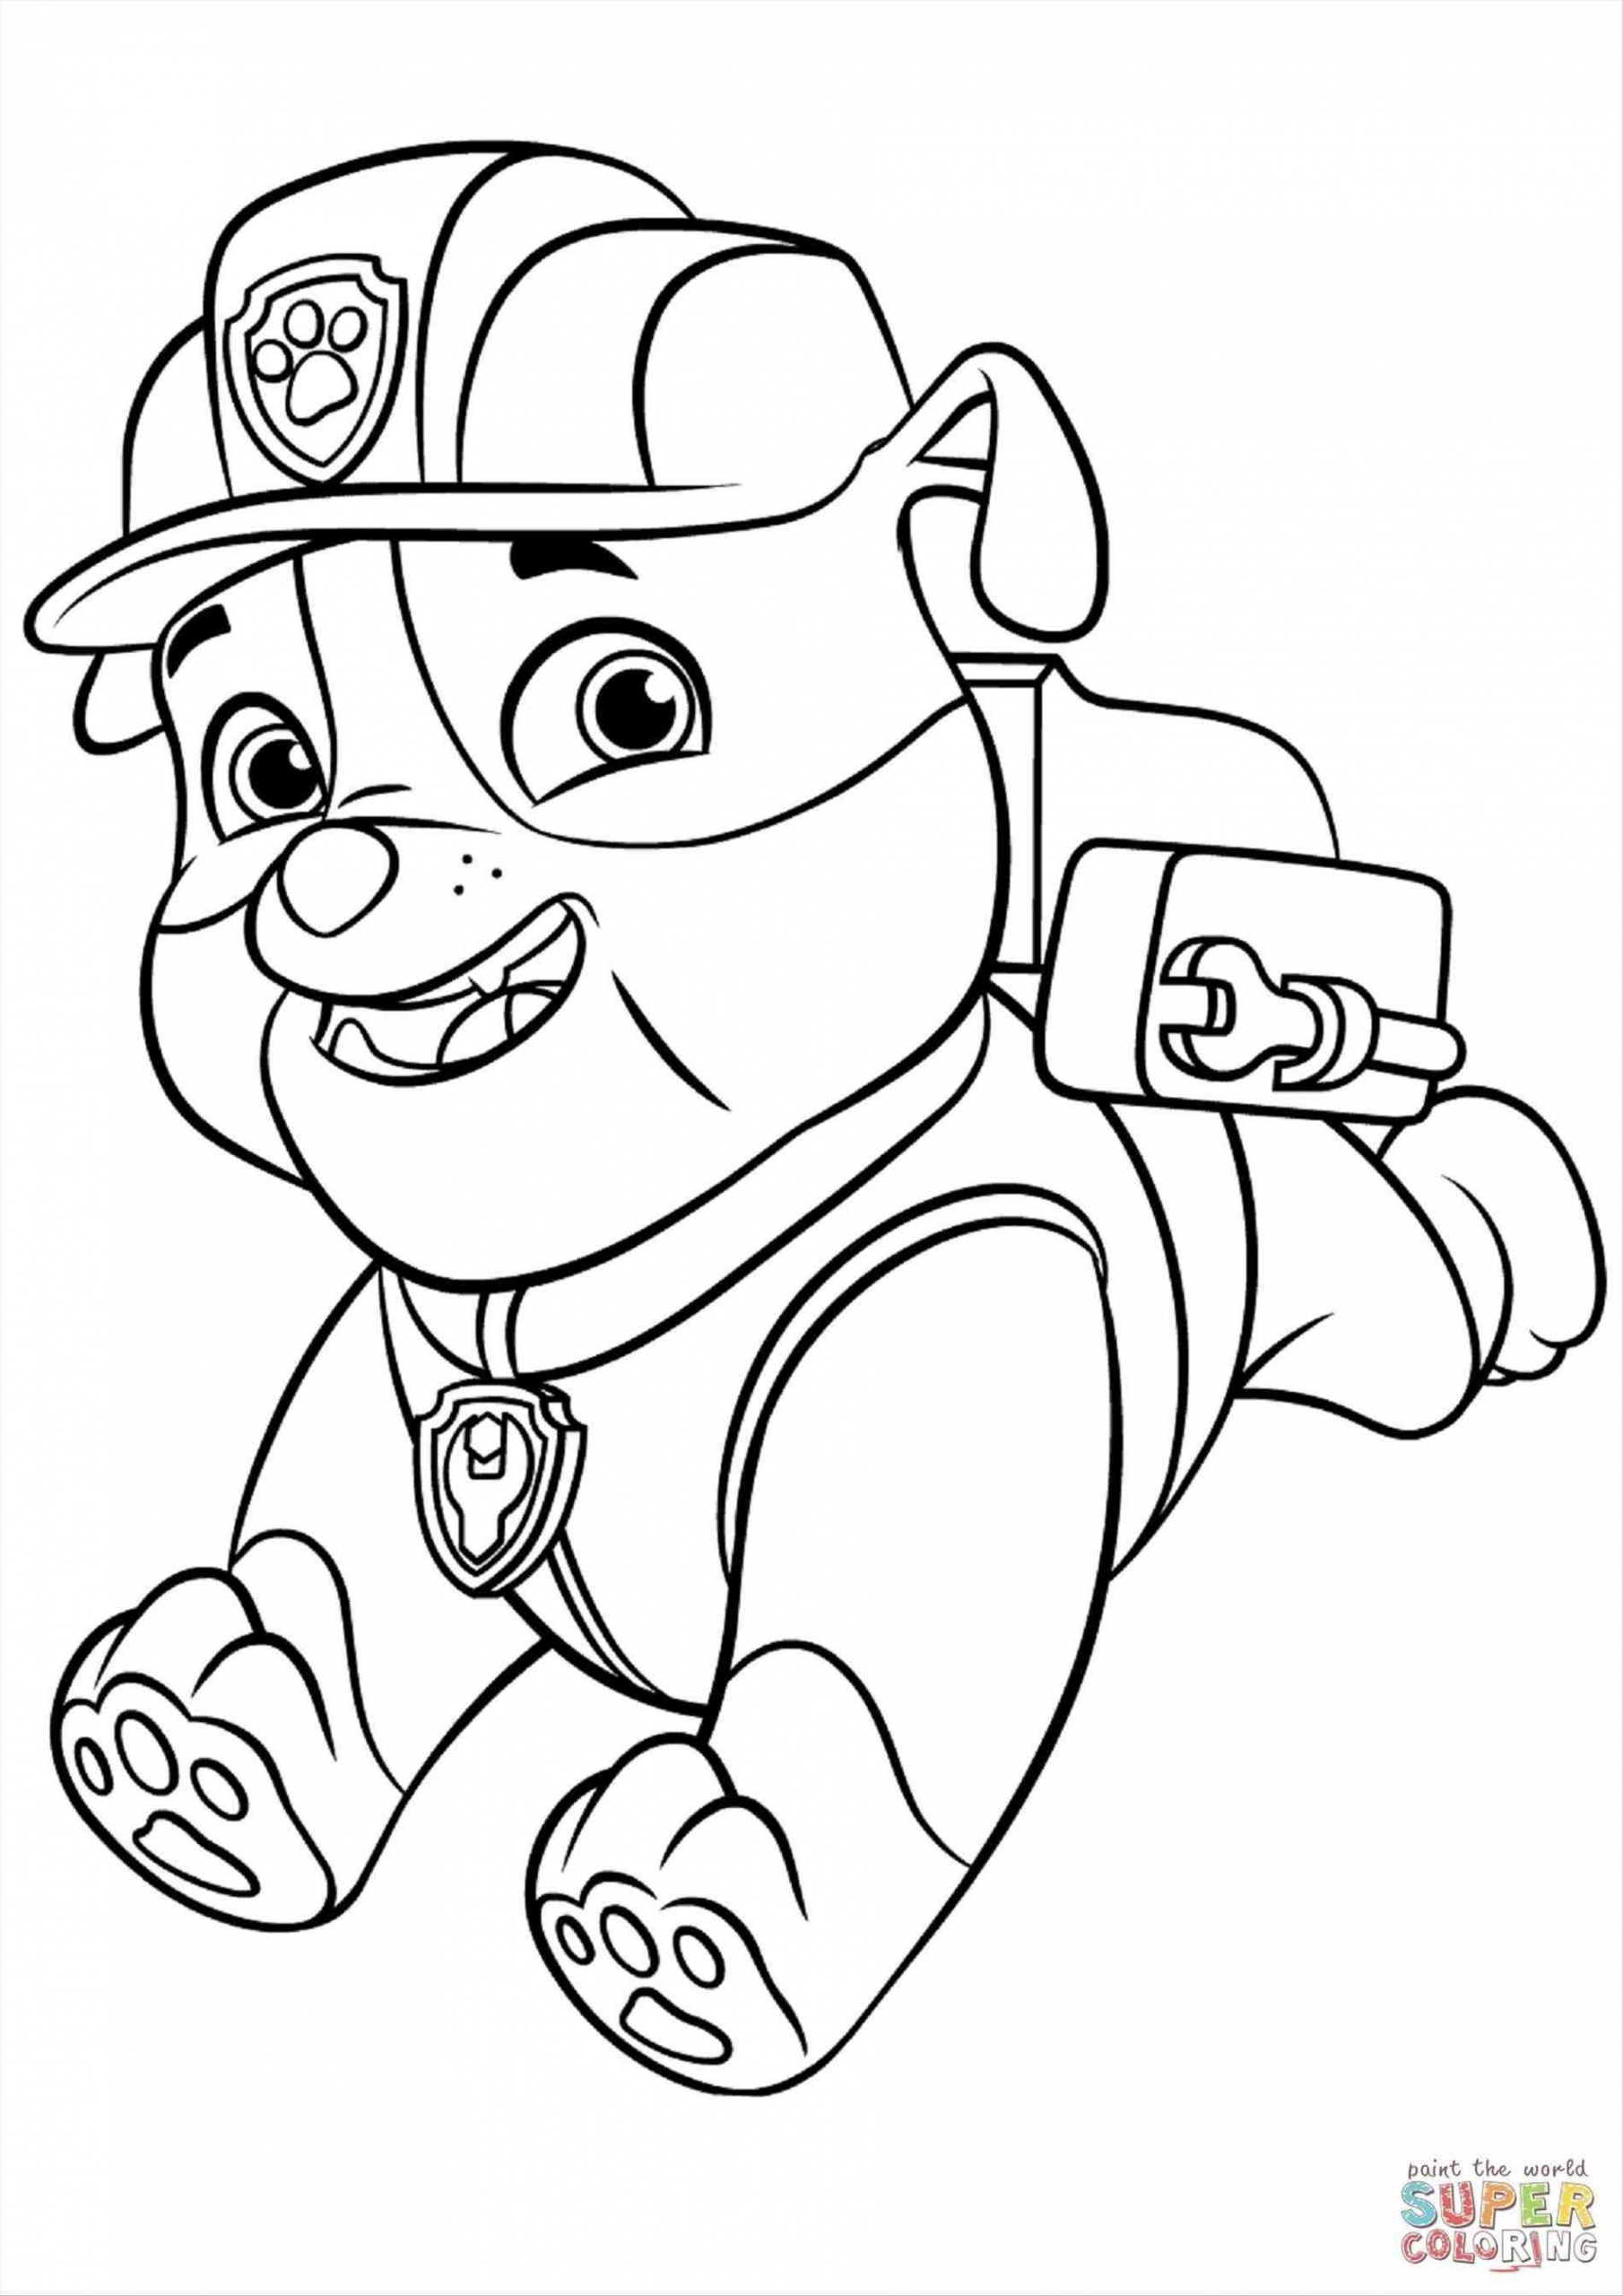 Rubble Paw Patrol Coloring Page Youngandtae Com In 2020 Paw Patrol Coloring Pages Paw Patrol Coloring Cartoon Coloring Pages